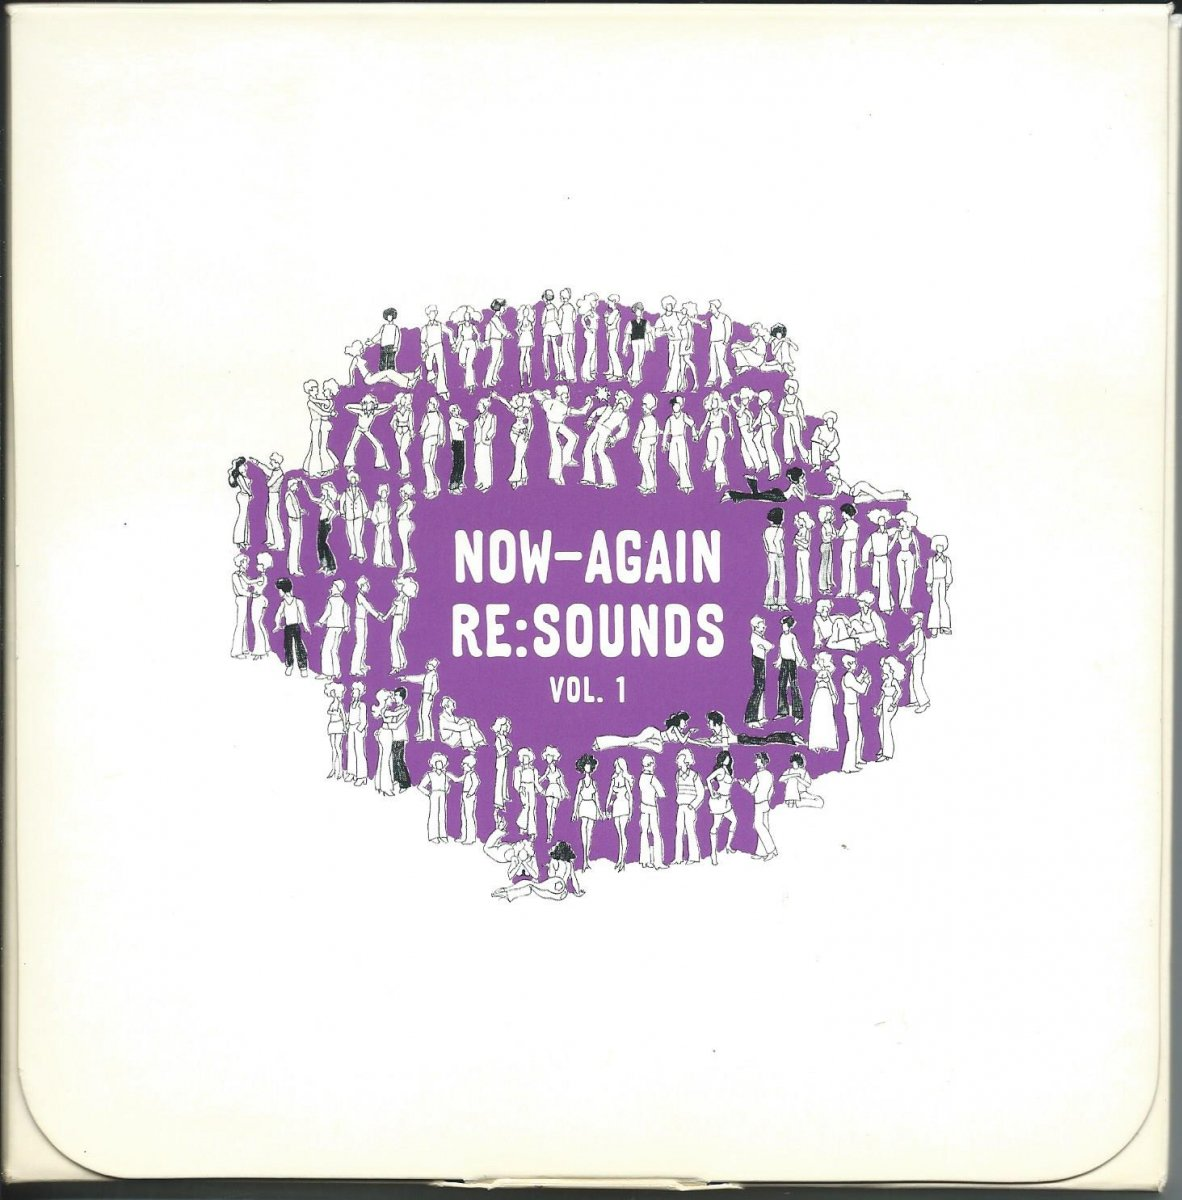 V.A.(GUILTY SIMPSON,QUASIMOTO,ALOE BLACC...) ‎/ NOW-AGAIN RE:SOUNDS (VOL. 1) (7